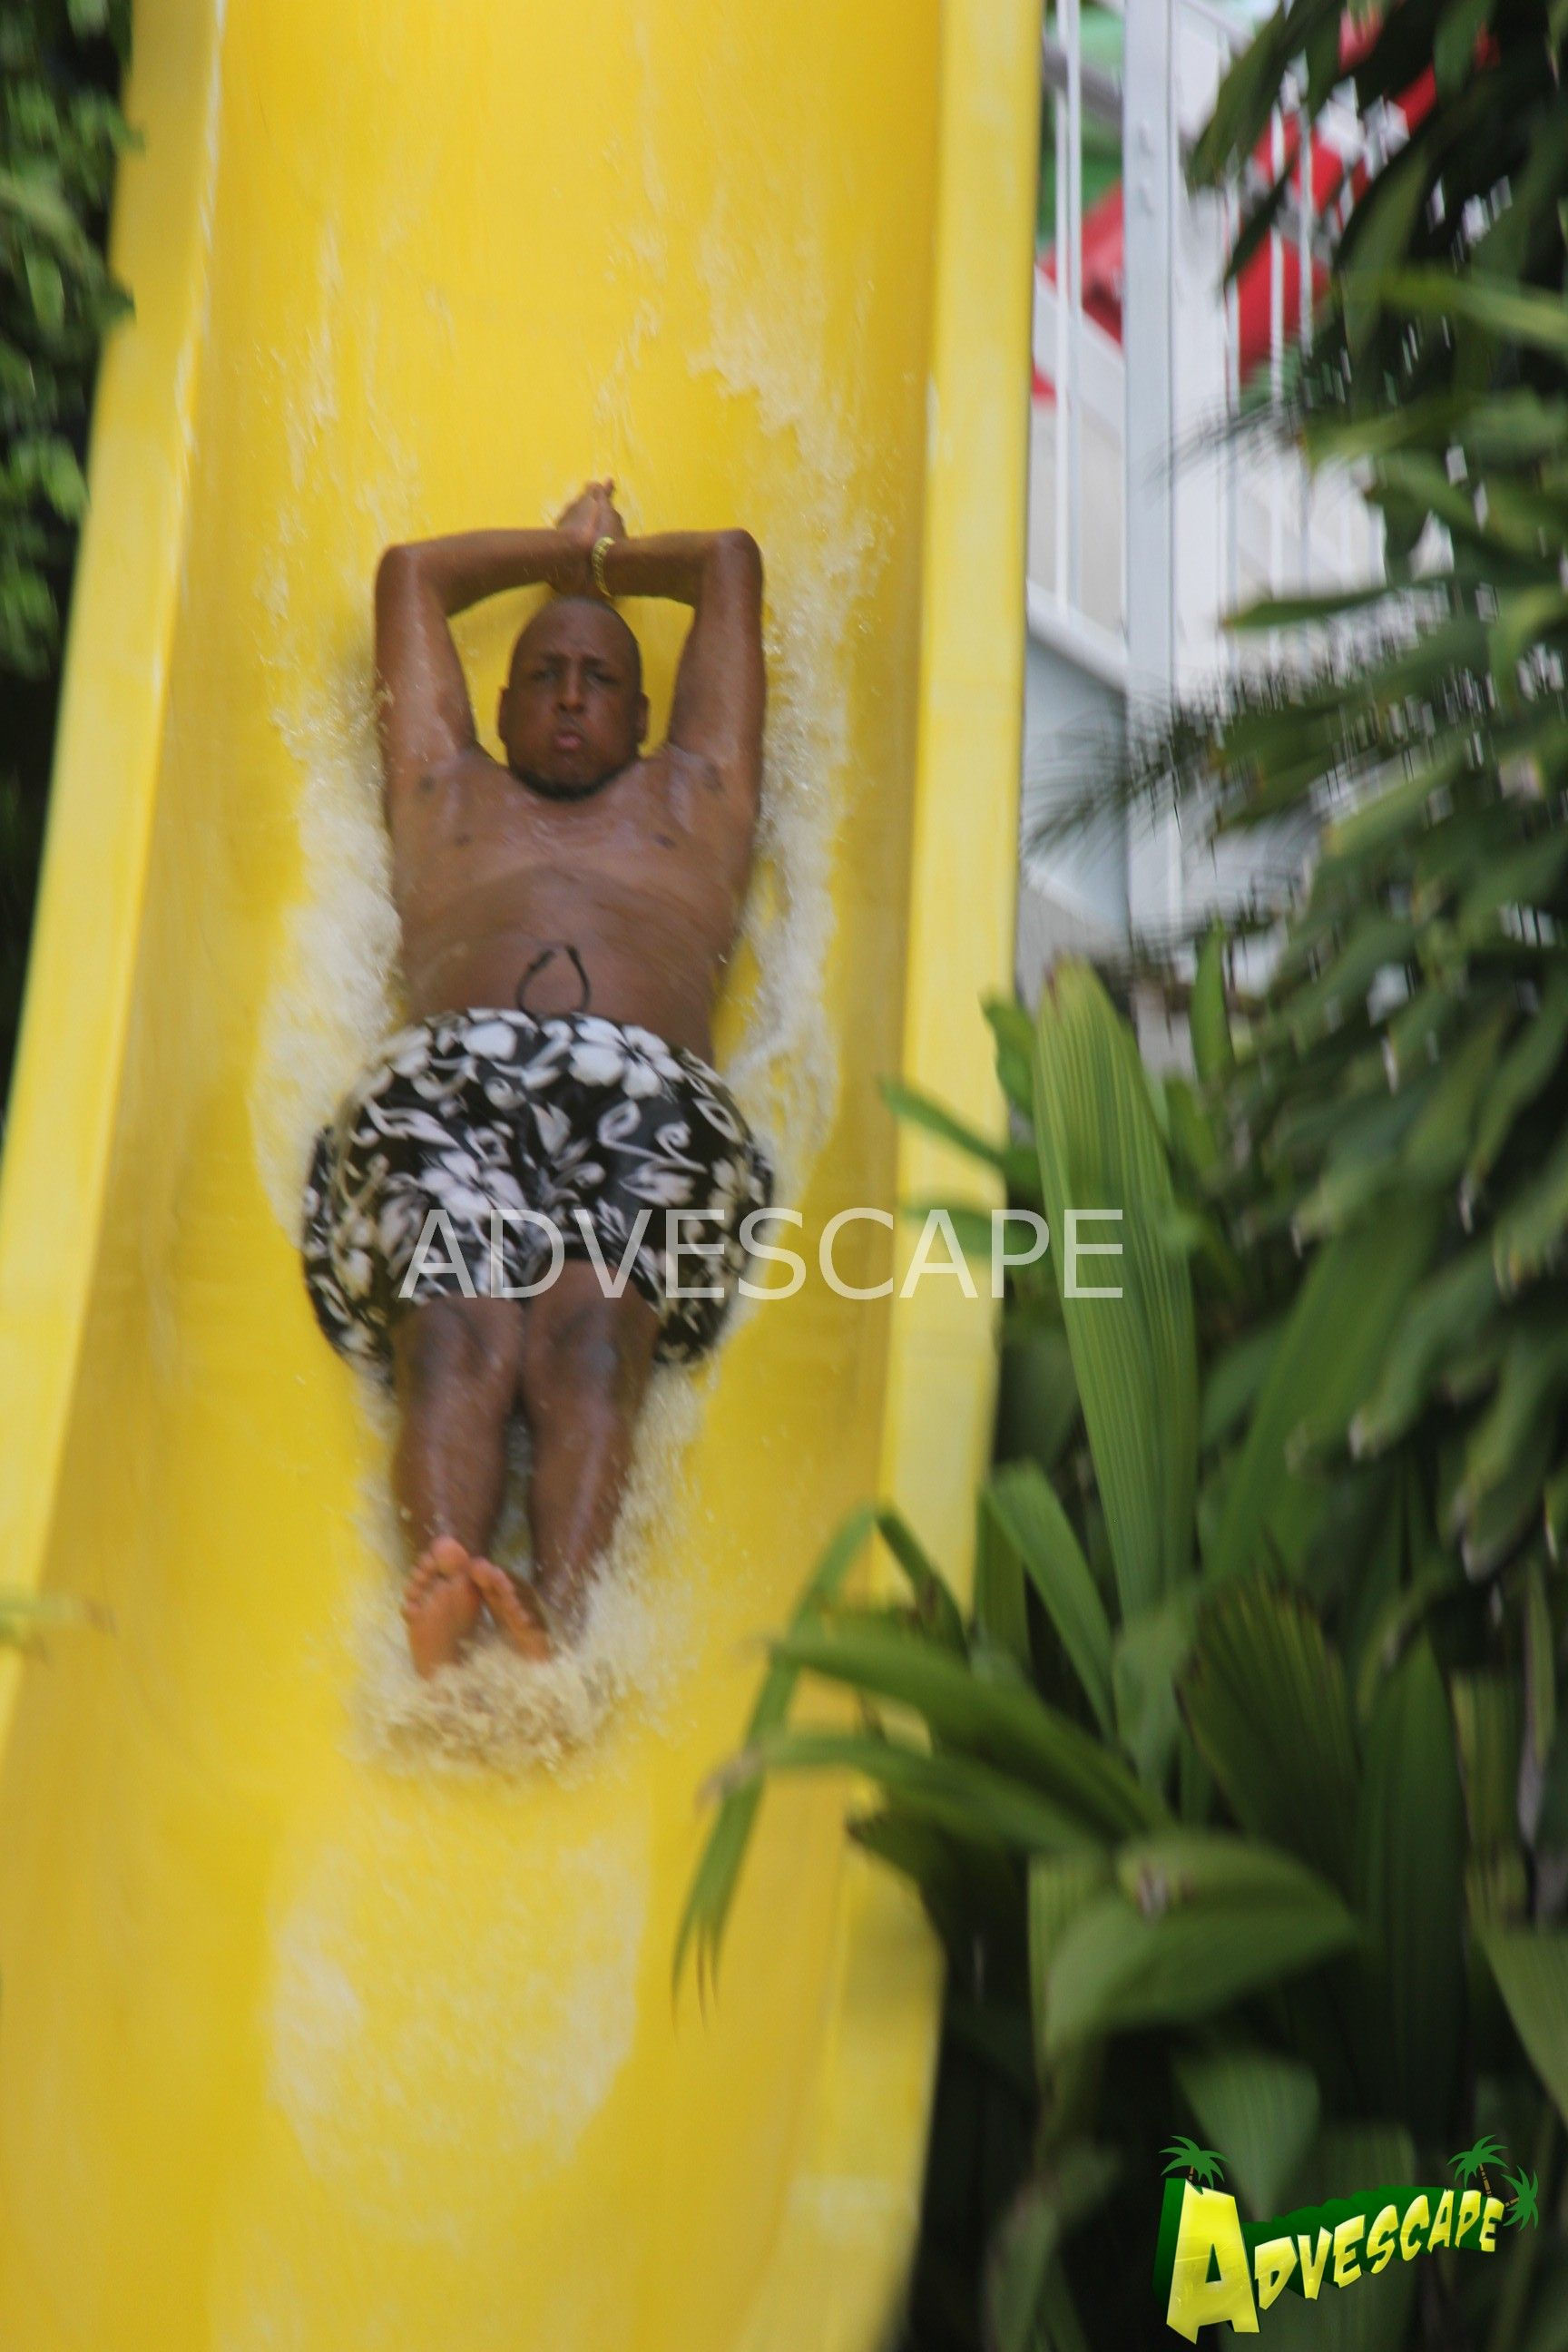 Morris taking it easy down the waterslide advescape kool runnings morris taking it easy down the waterslide find this pin and more on kool runnings water park publicscrutiny Images